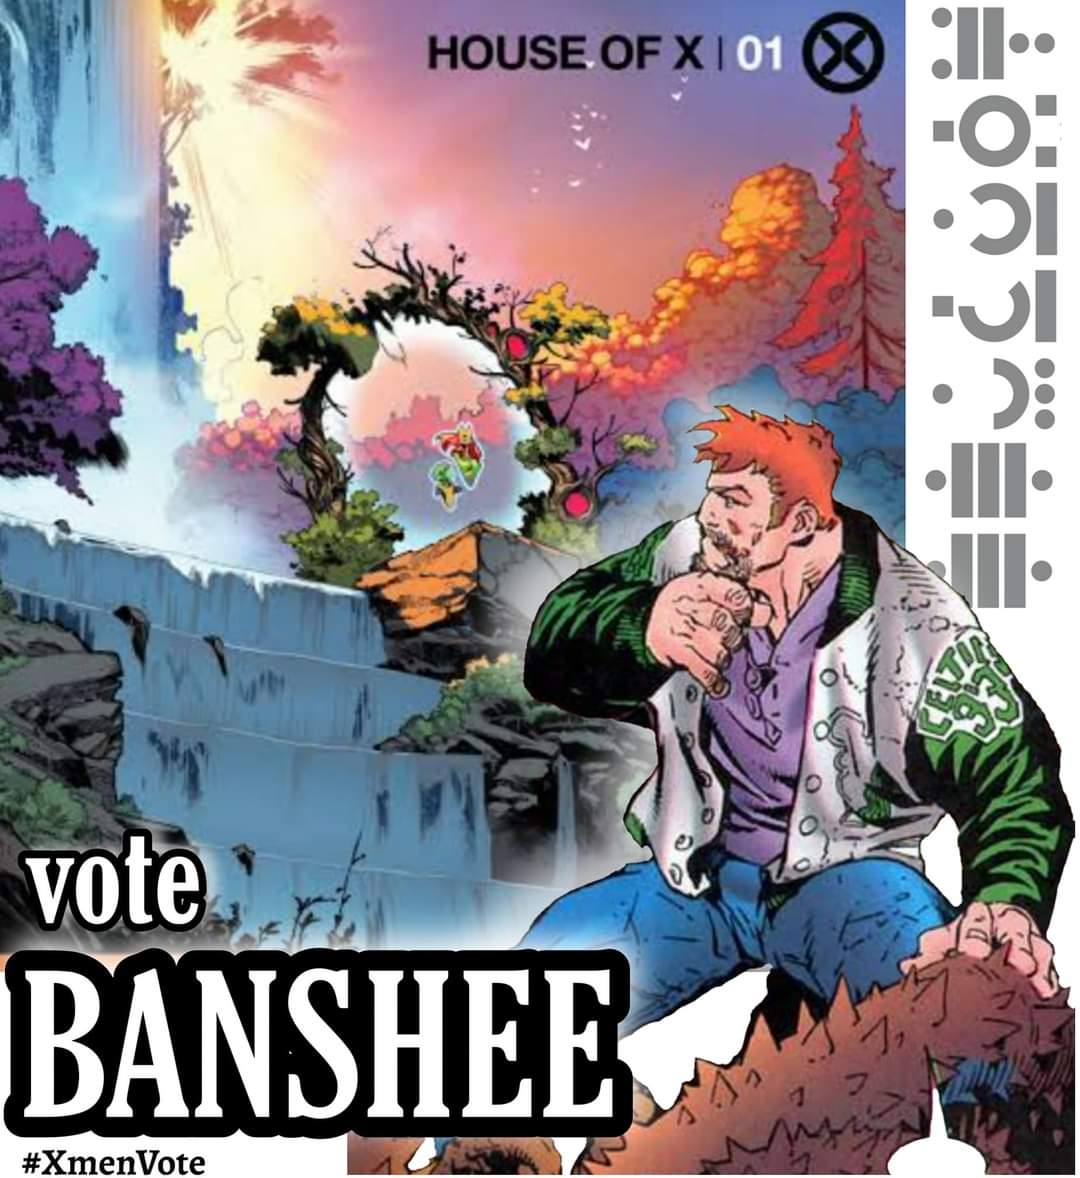 @FireKing__ Yeah! The new team could use some irish luck. 🍀#XmenVote #VoteBanshee